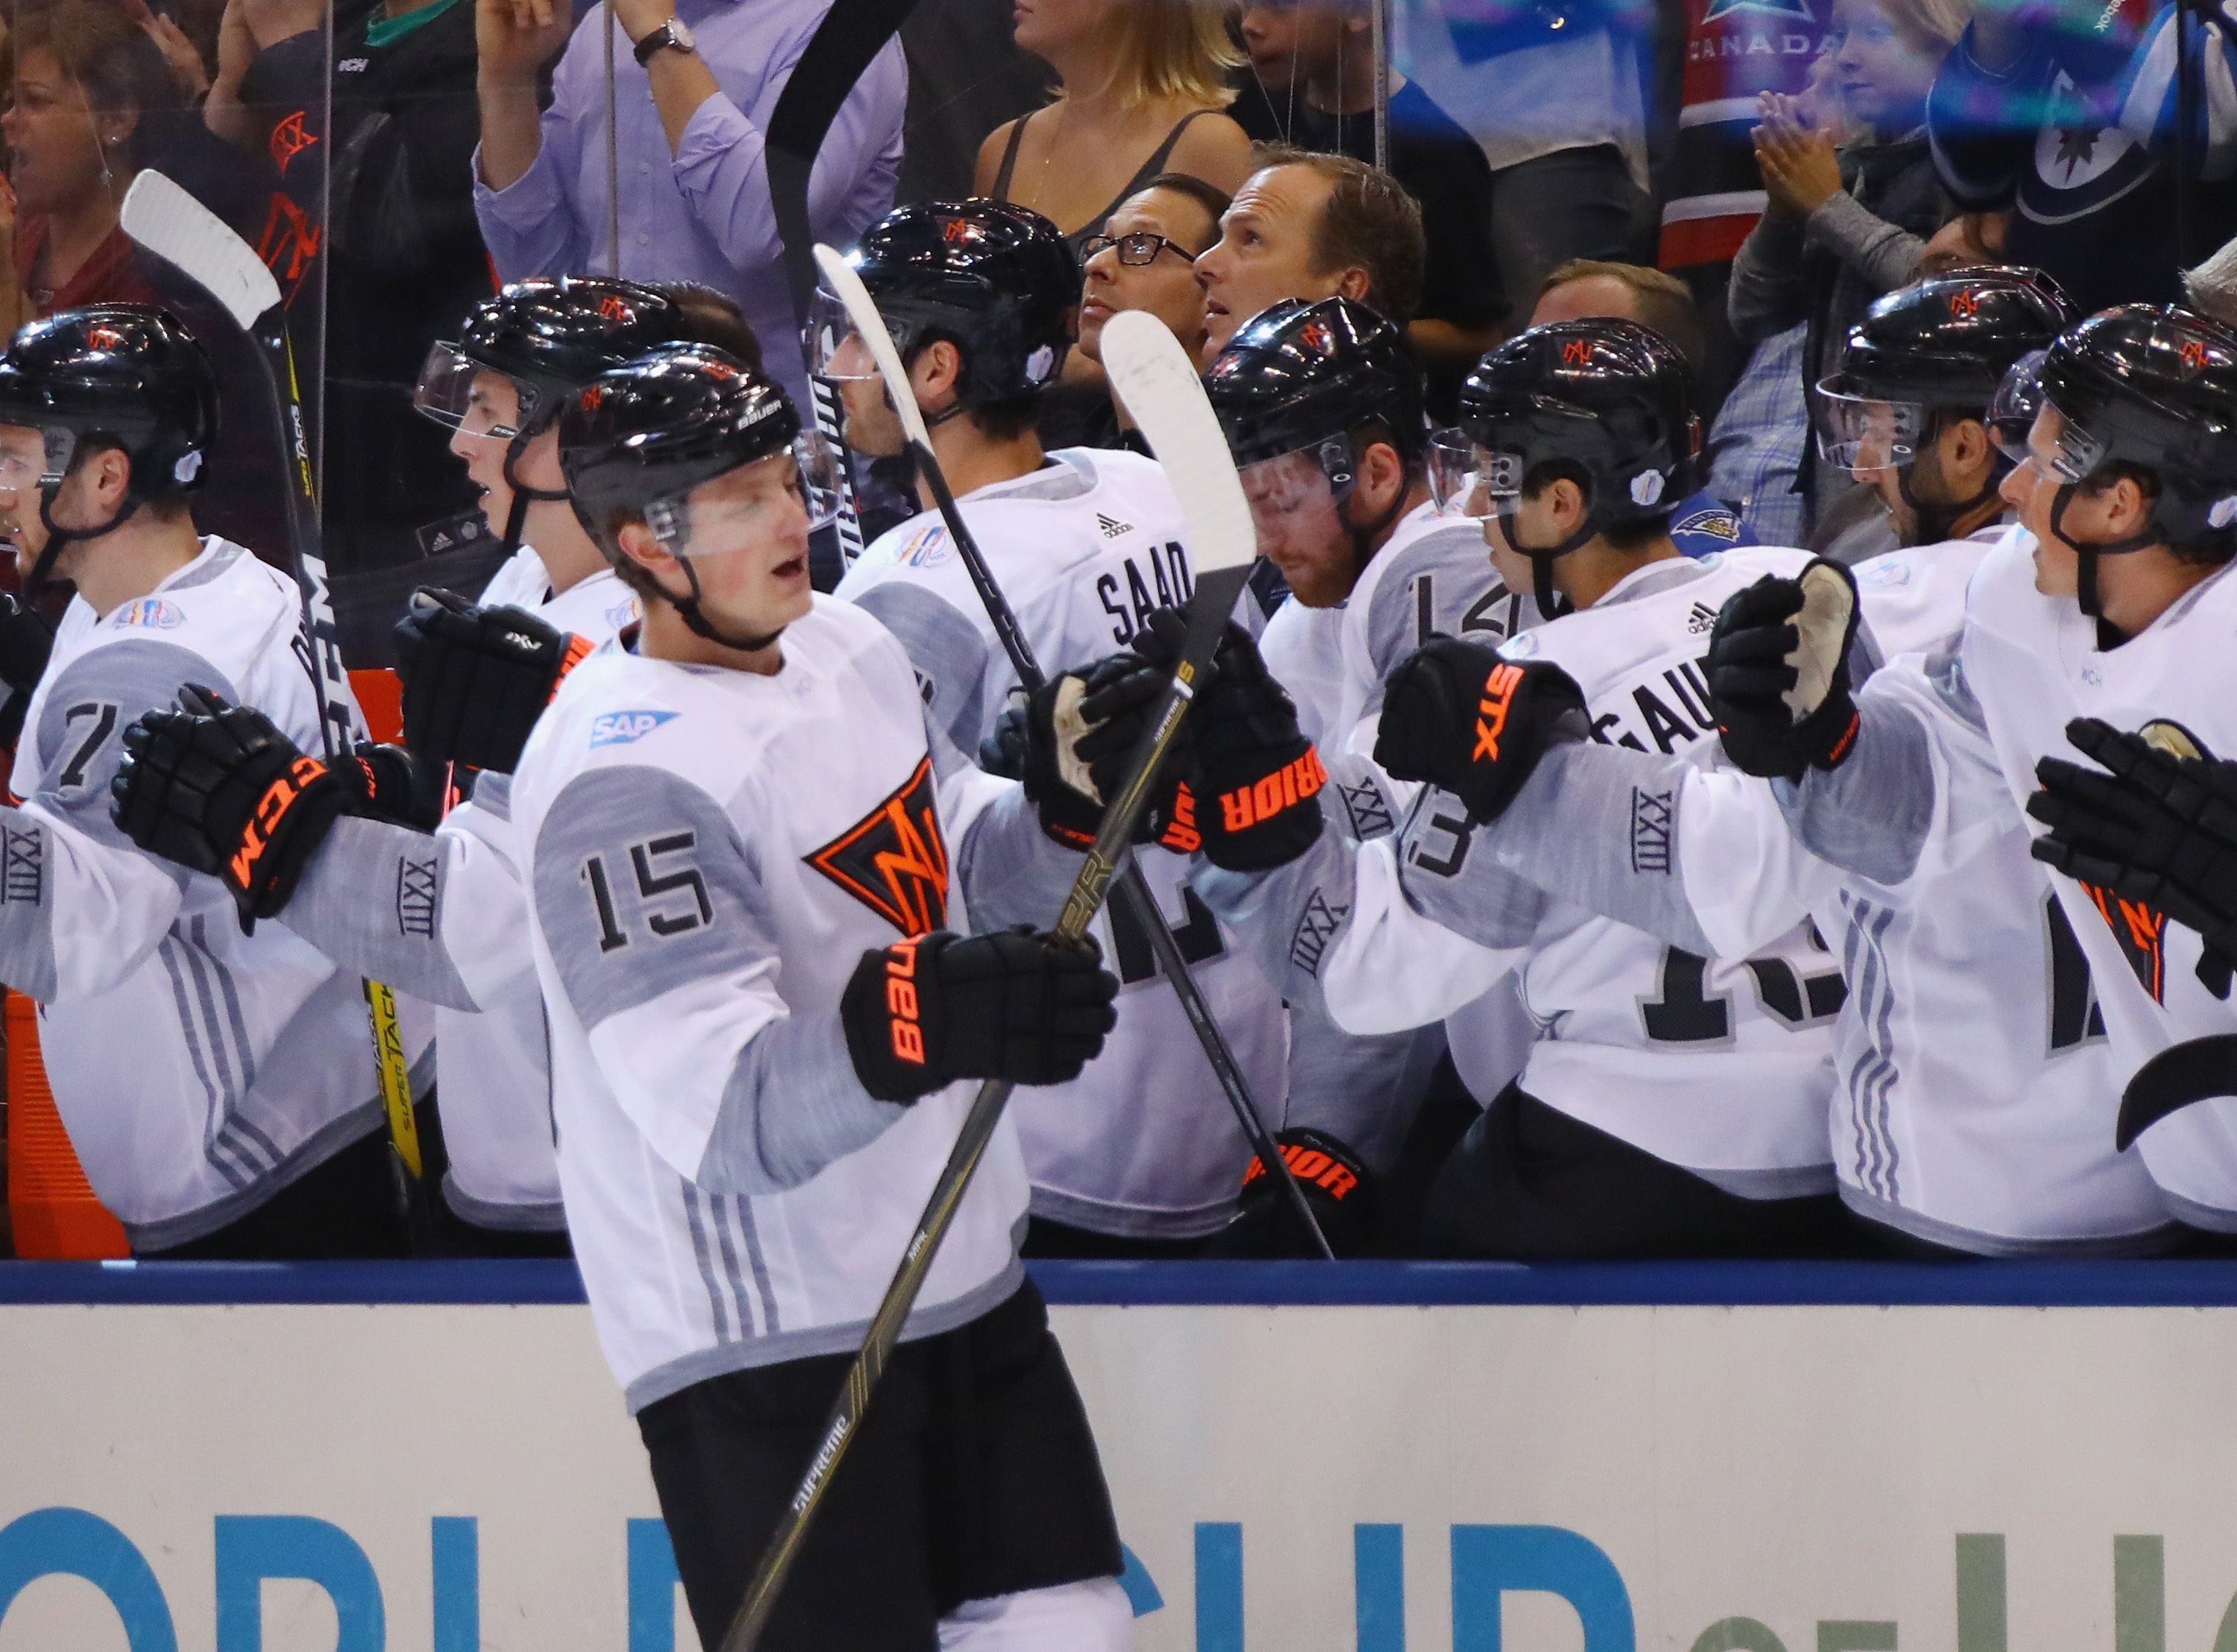 Jack Eichel gained confidence playing for Team North America. (Getty Images)